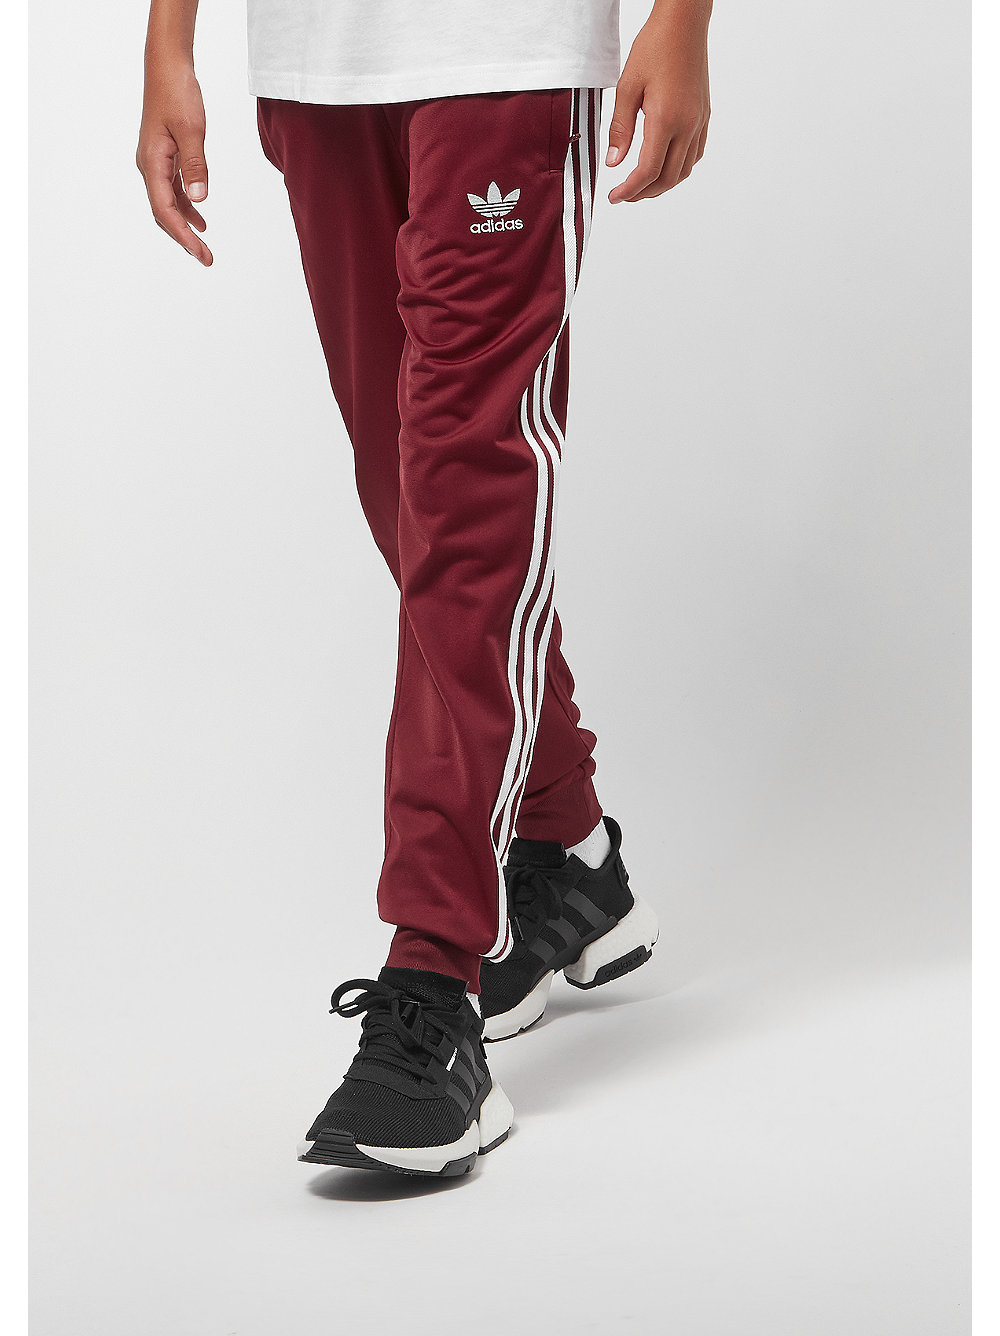 adidas J Super Star collegiate burgundy